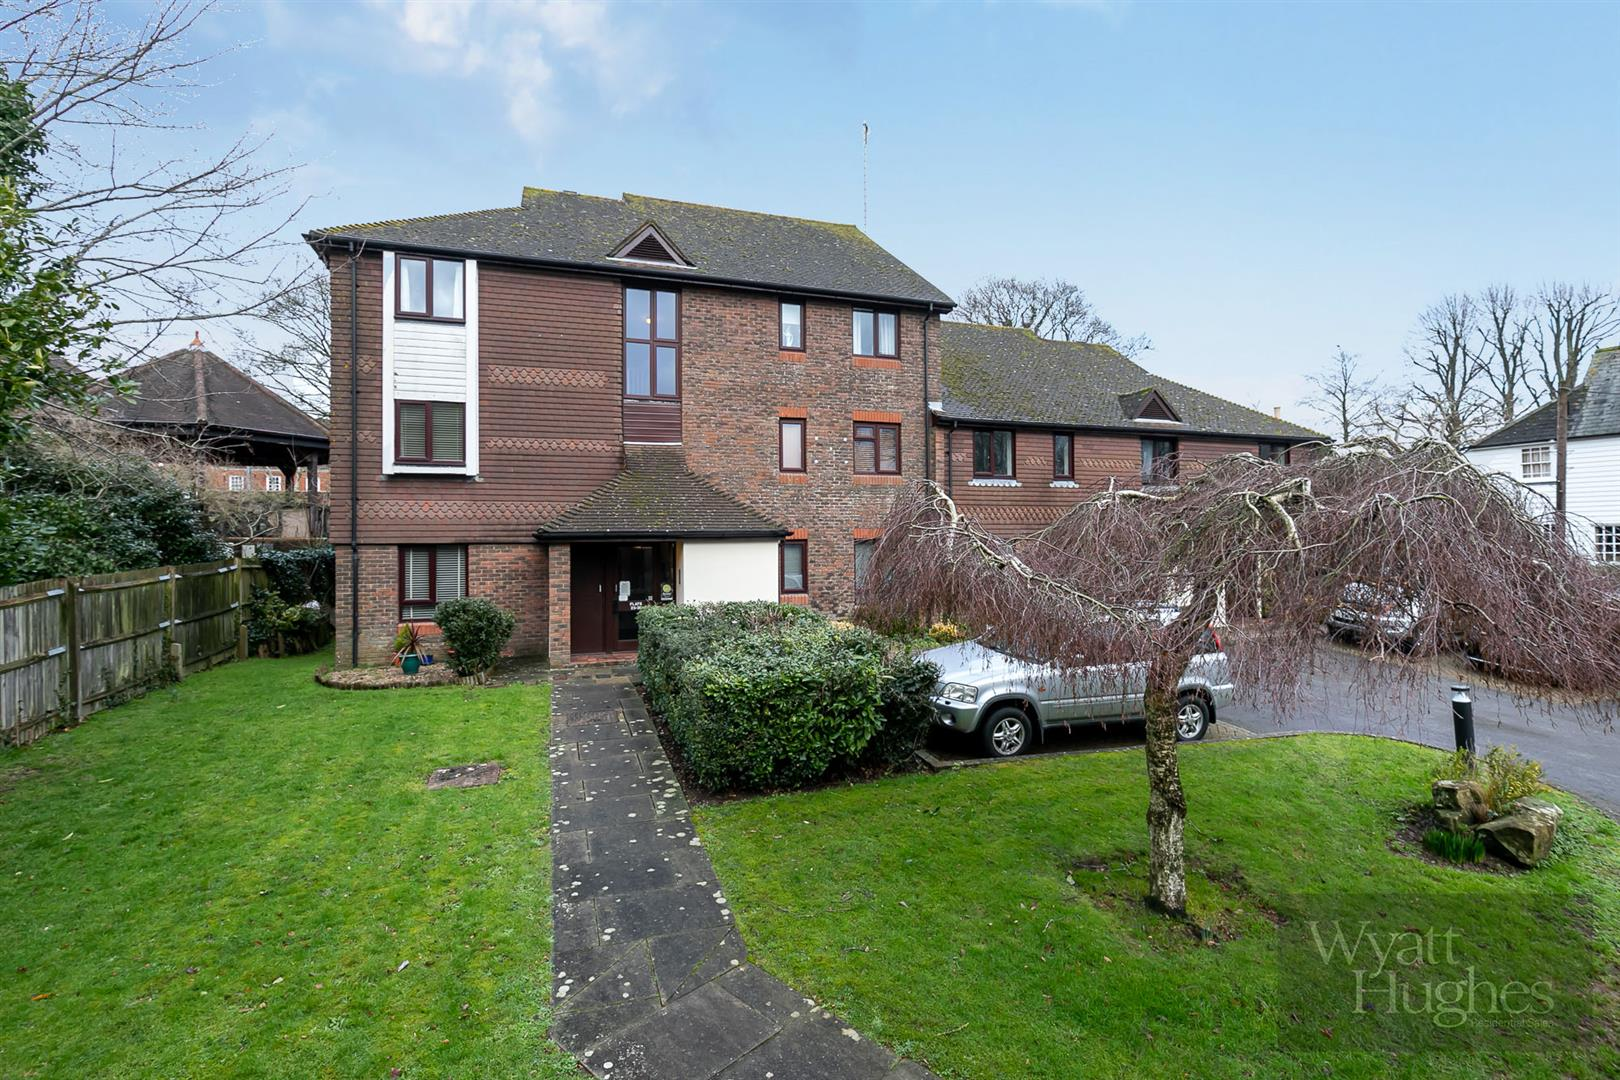 1 bed apartment for sale in Woodhams Close, Battle, TN33